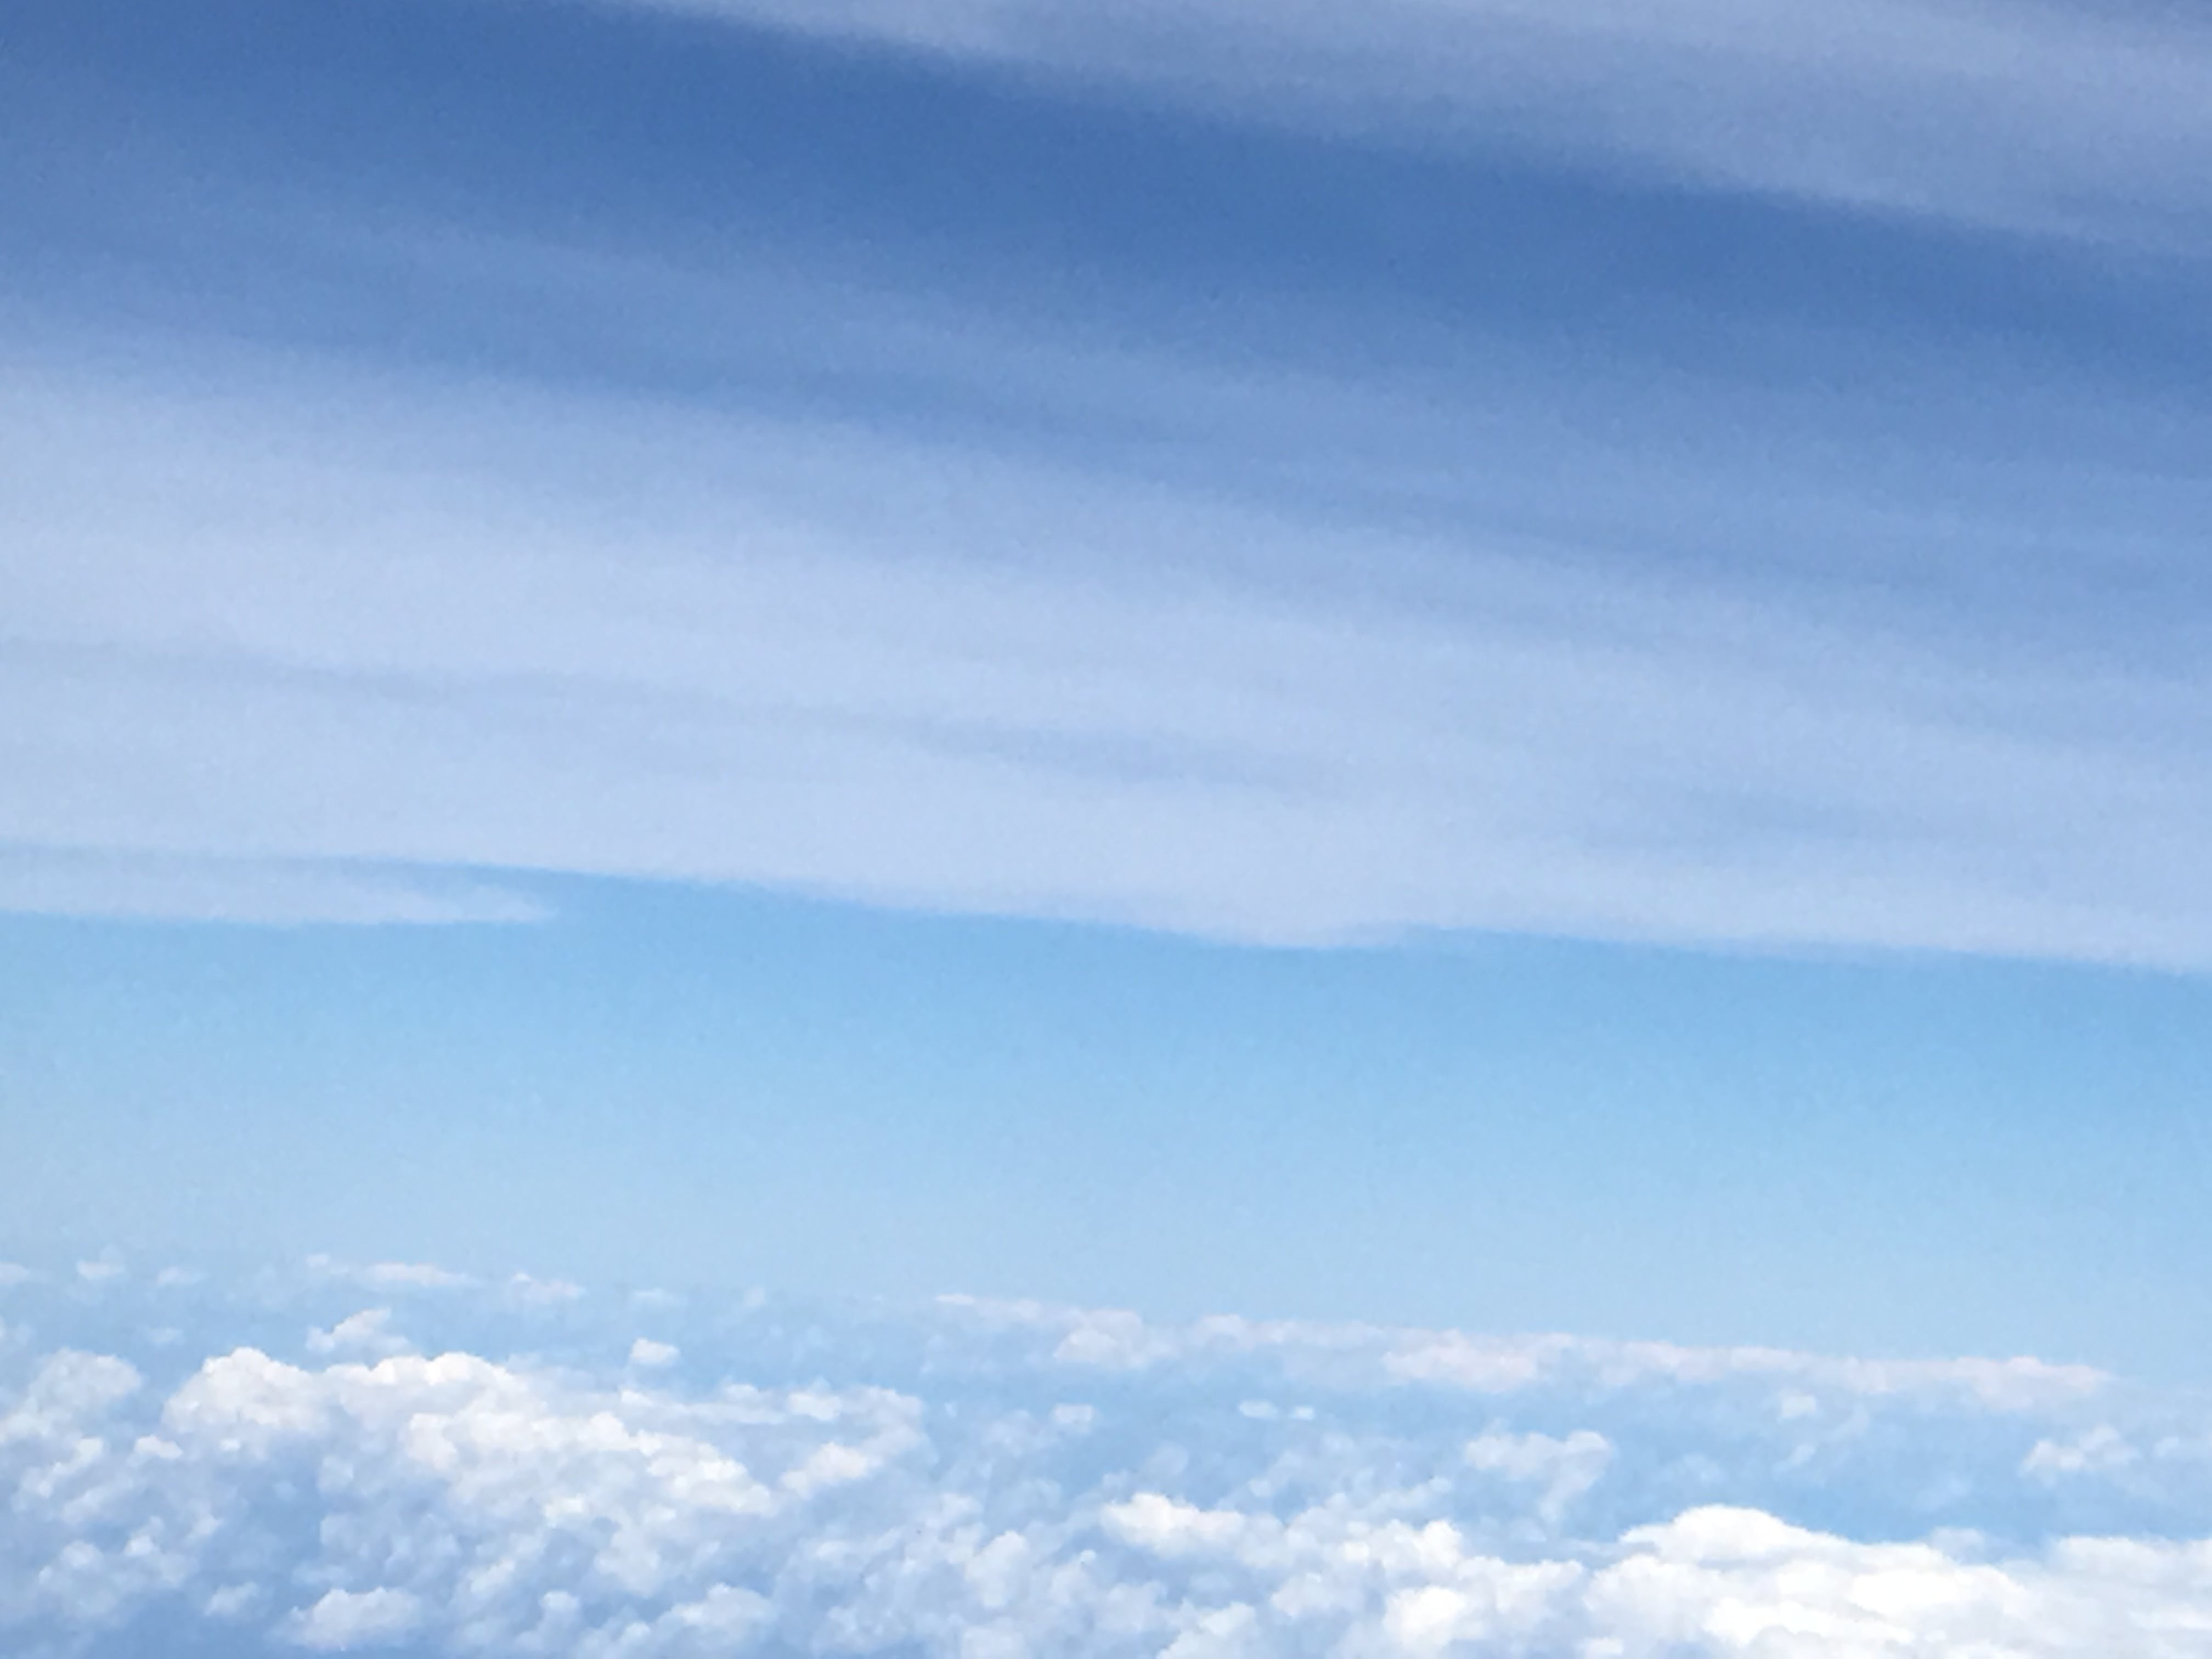 Free stock photo of clouds, pacific ocean